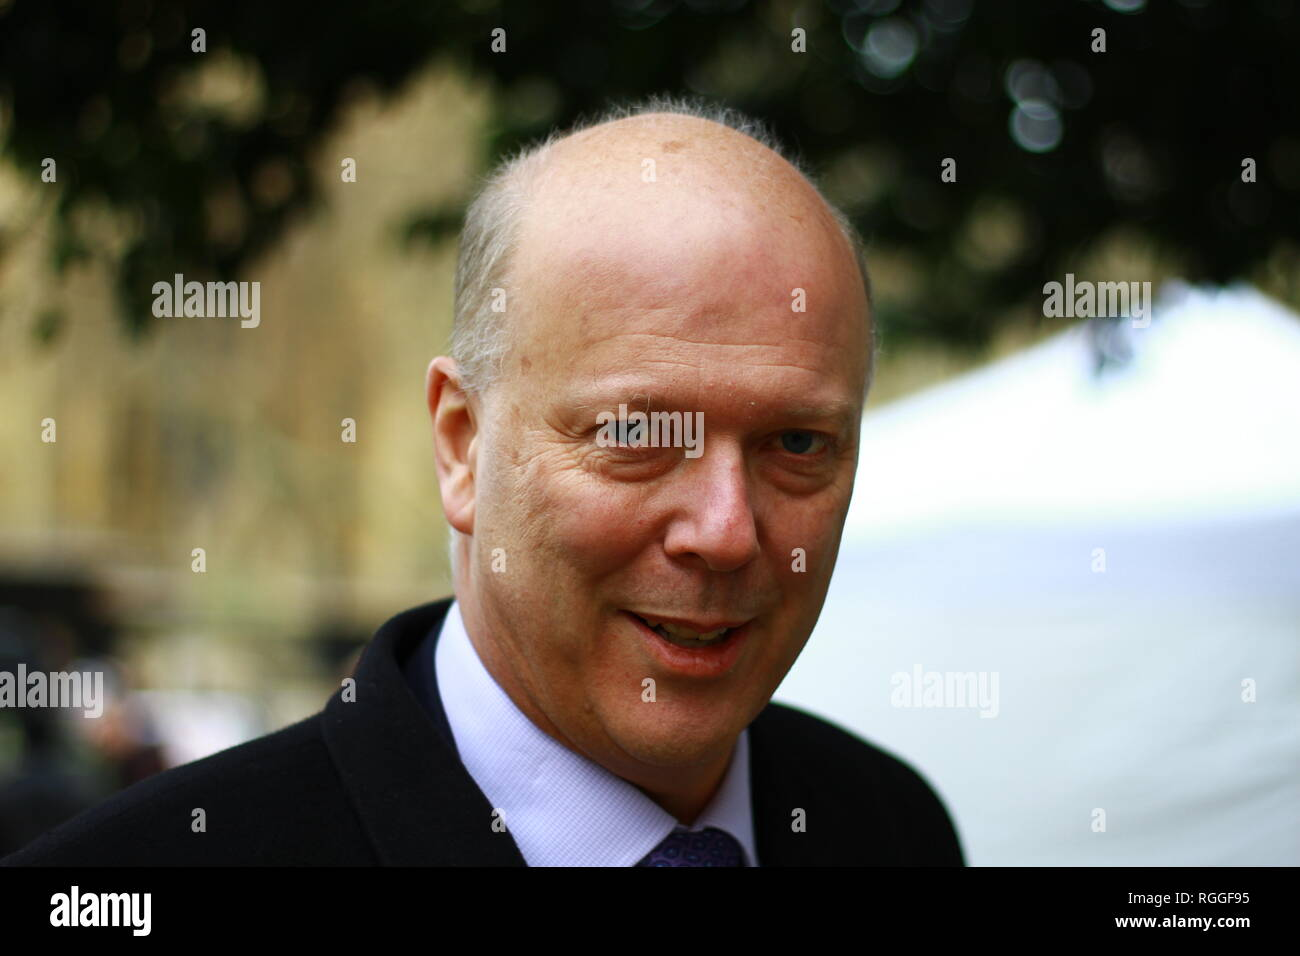 Chris Grayling MP in Westminster, London, UK on 29th January 2019. British politicians. UK members of parliament. Transport minister. Minister for Transport. Trains. HS2. HS1. Tory. Tories. Conservative party MPS. Christopher Stephen Grayling Secretary of State for Transport. Sometimes referred to as failing Grayling. - Stock Image